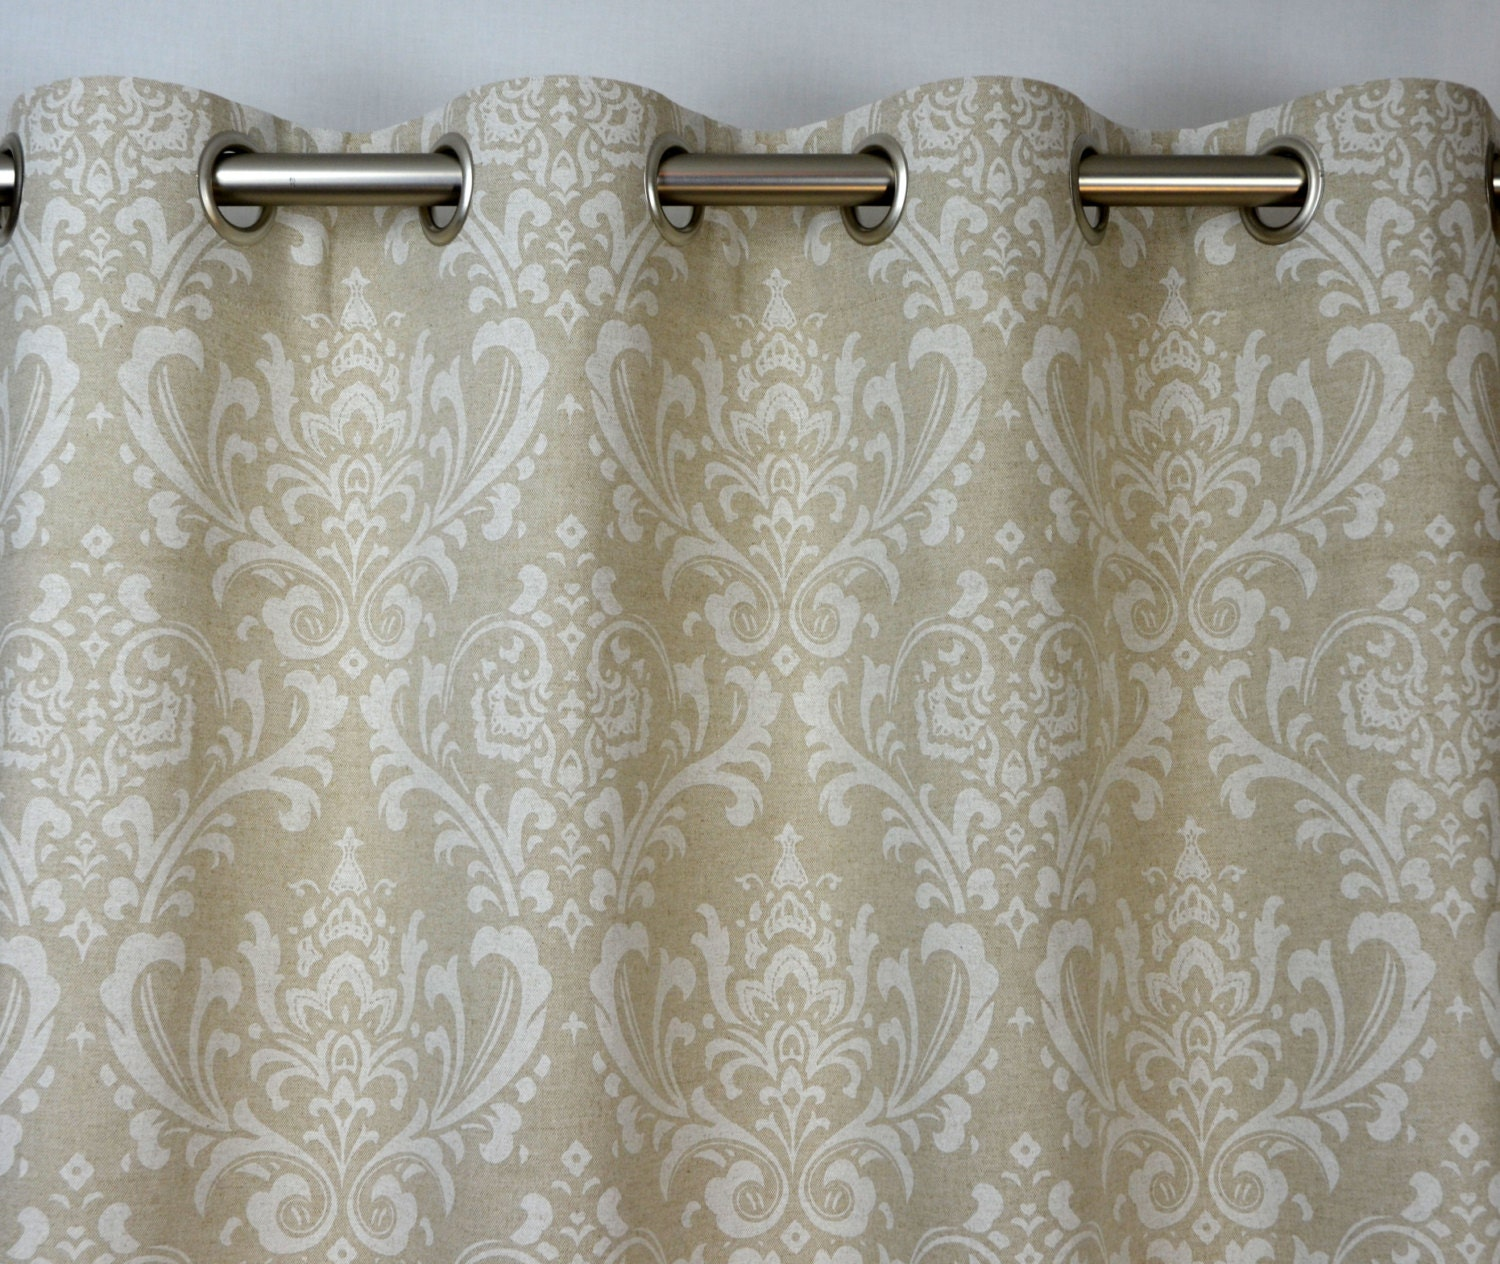 Cloud light gray taupe beige ivory natural linen traditions for Beige damask curtains